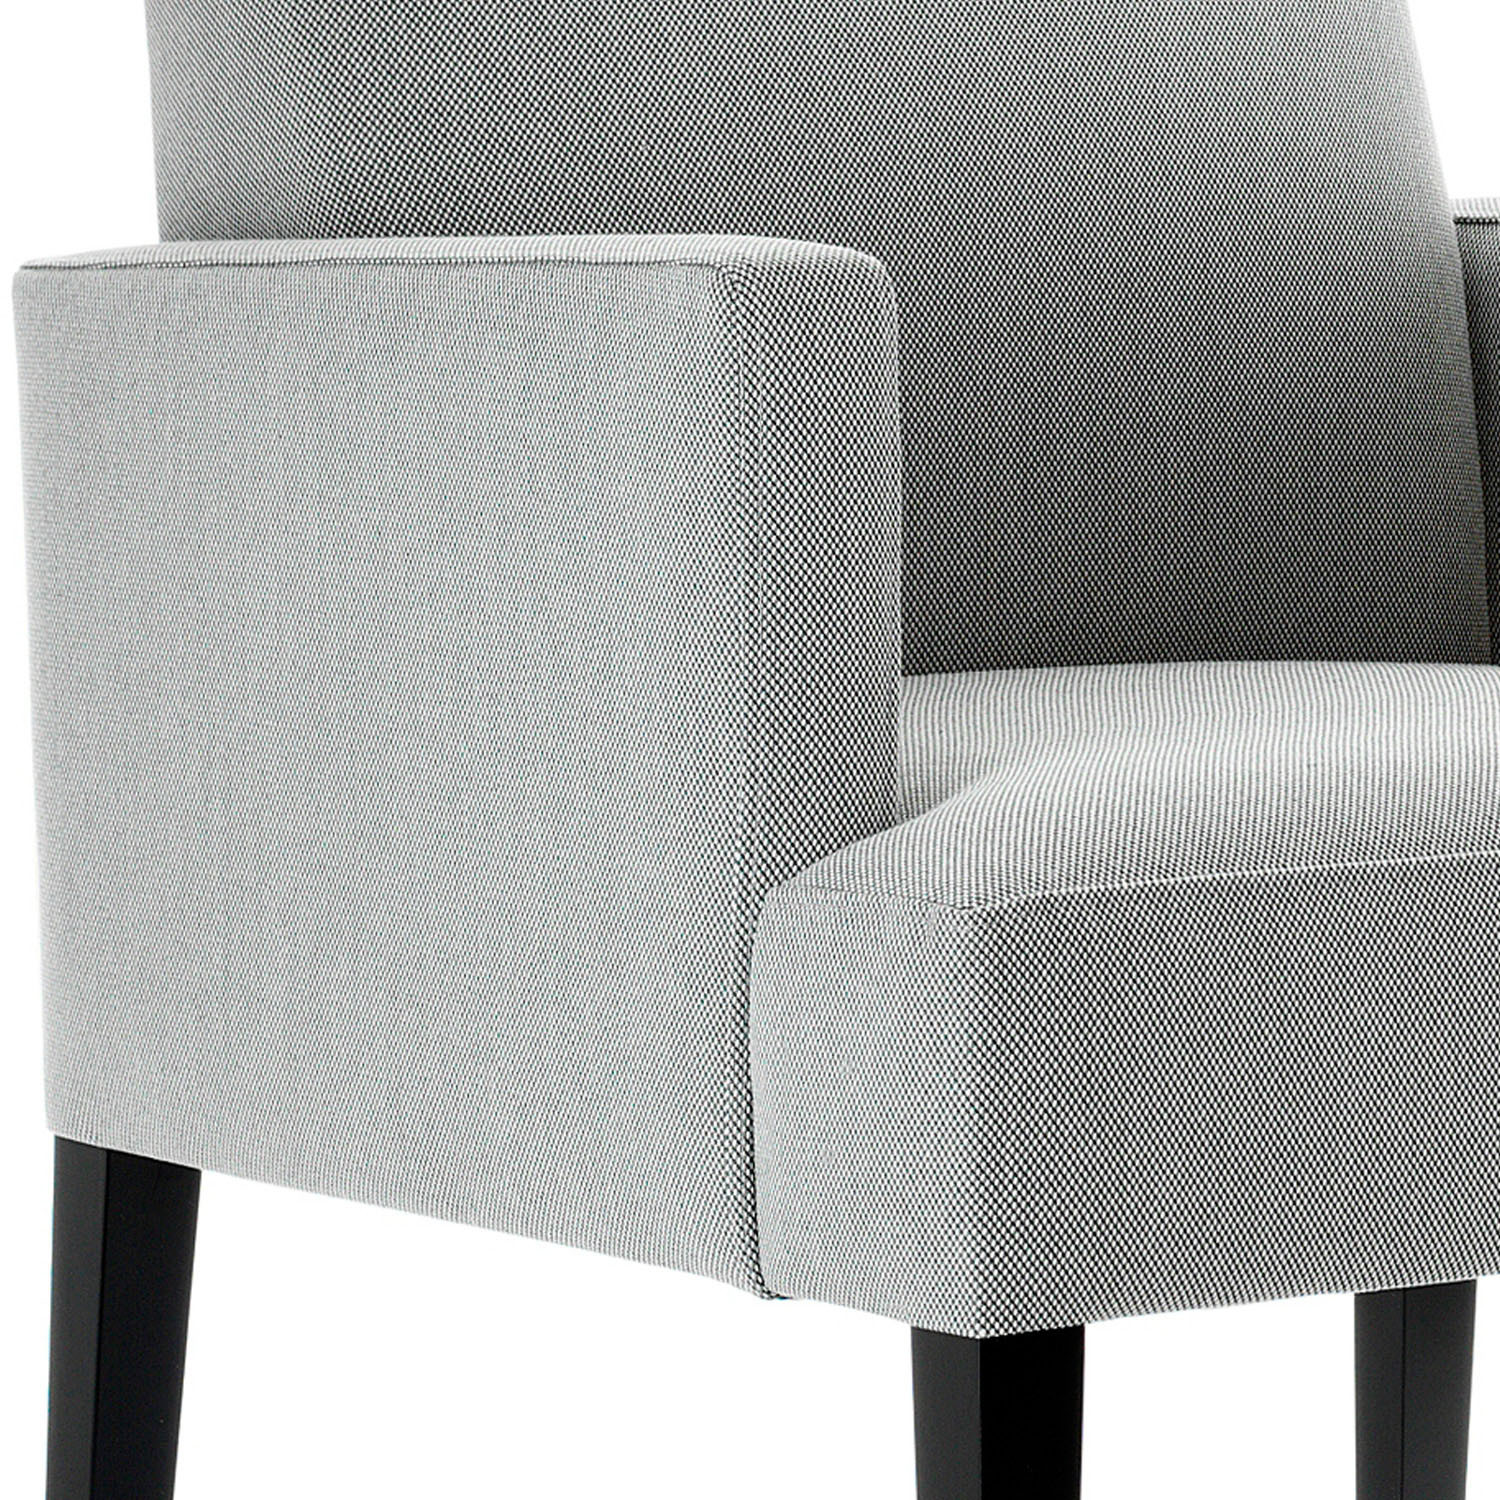 Diana Armchair by Lyndon Design